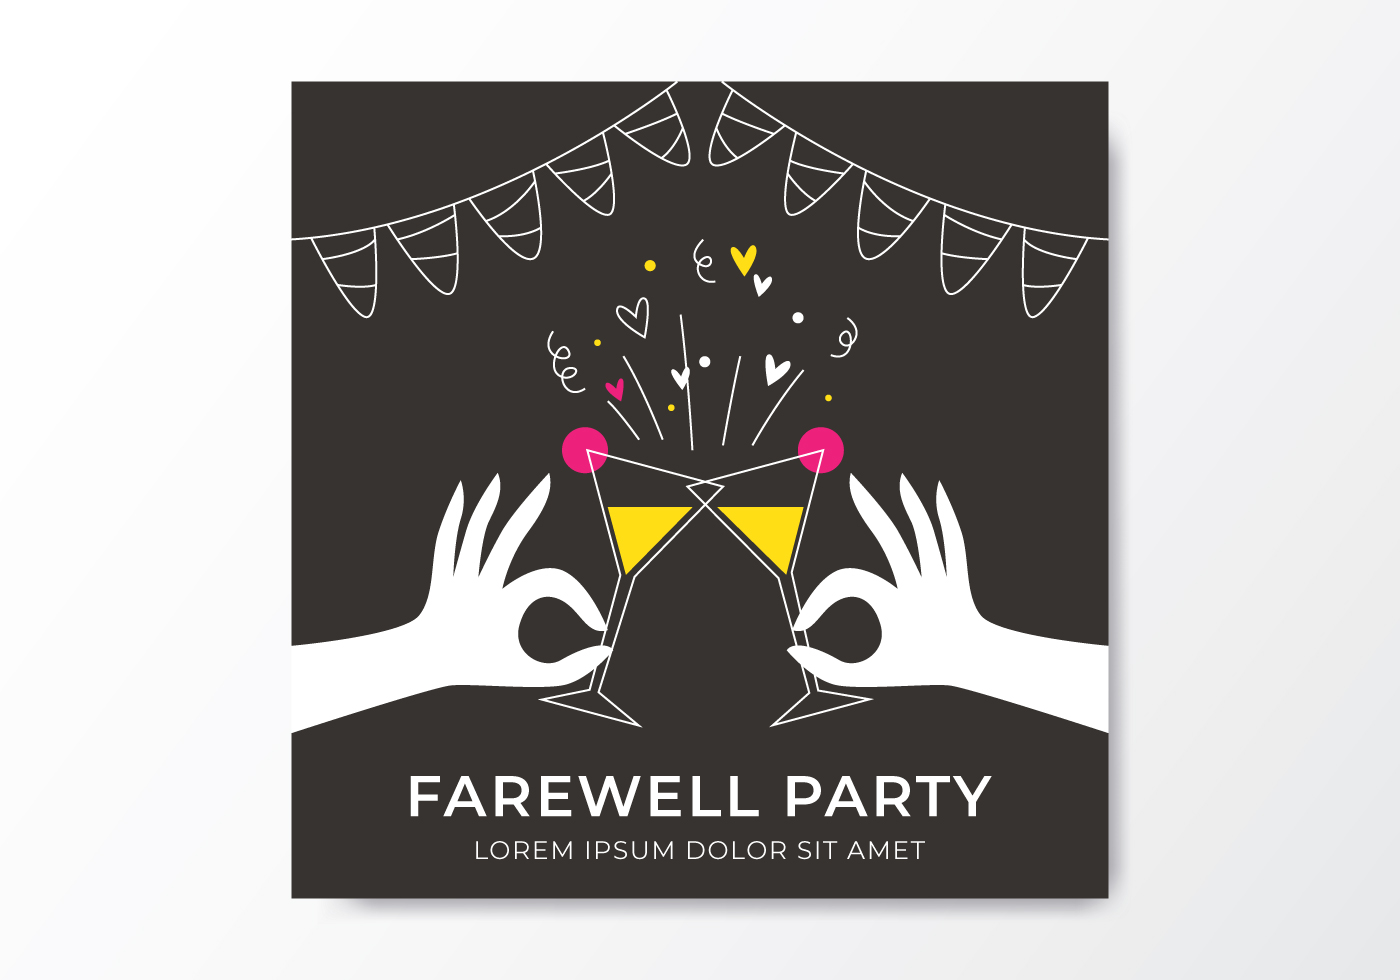 Farewell Party Invitation - Download Free Vectors, Clipart ...